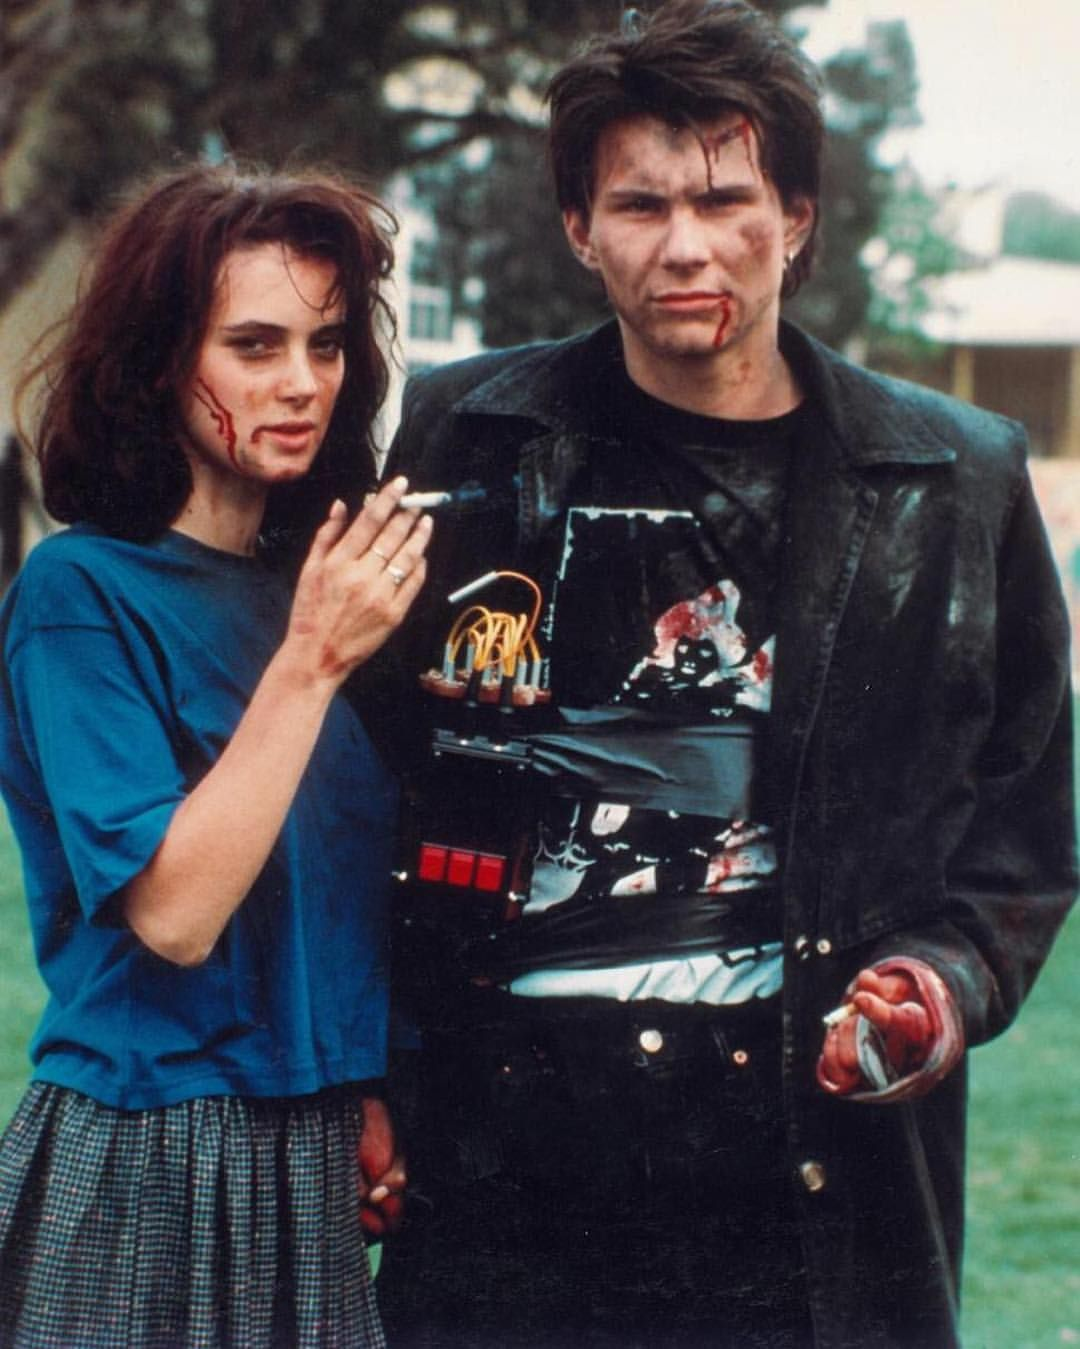 Retro Review] Heathers (1988) – The Cultured Nerd